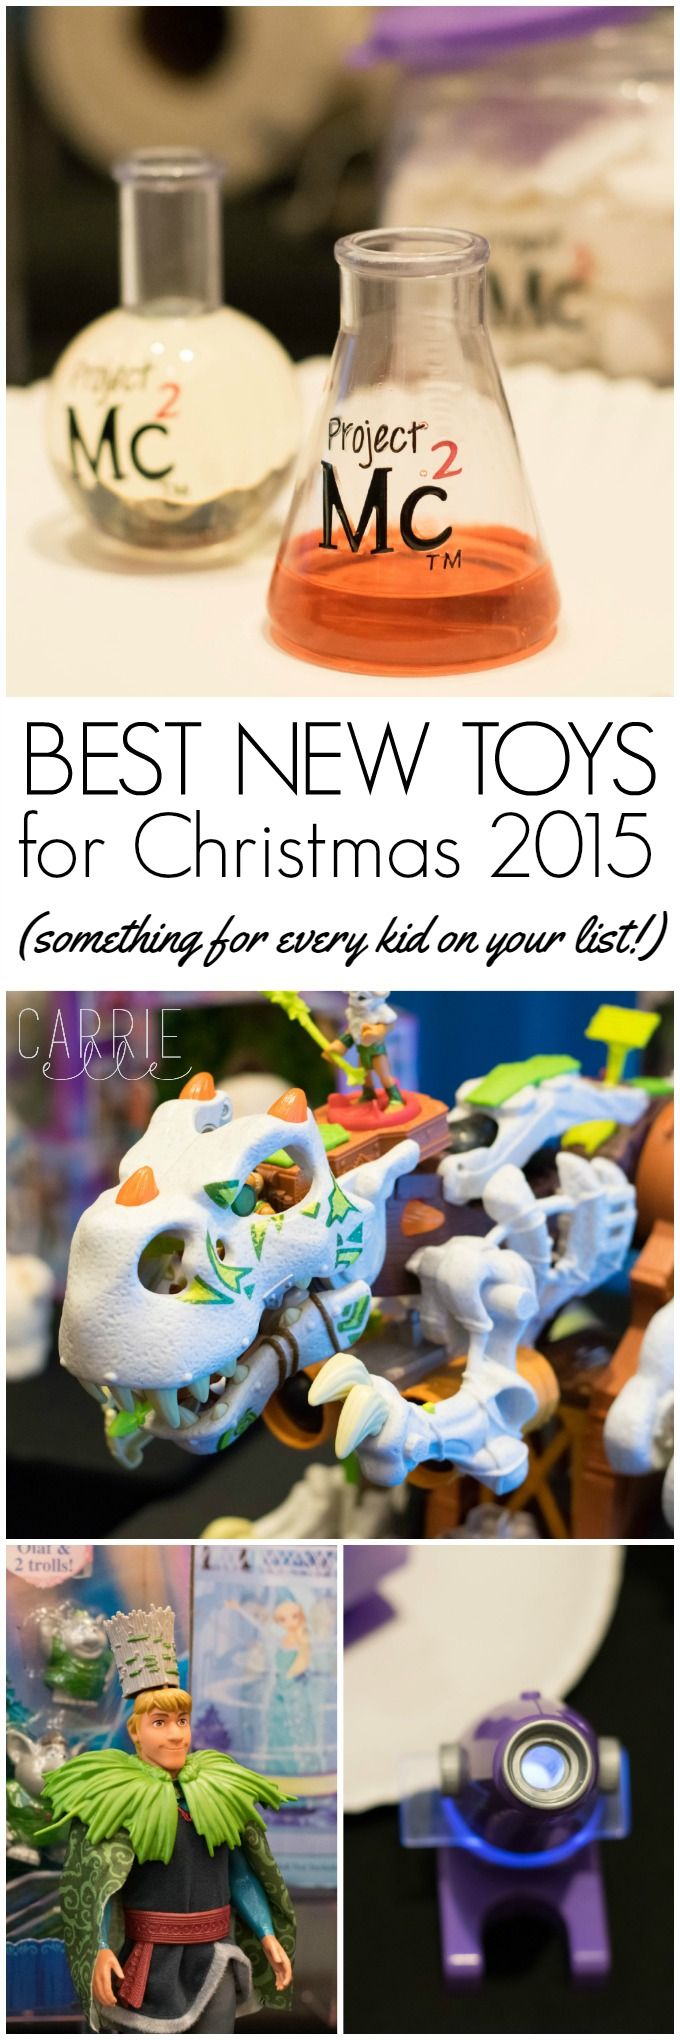 Best New Toys for Kids for Christmas Holidays 2015 ad. Love that the list has something for every kid on it! ad